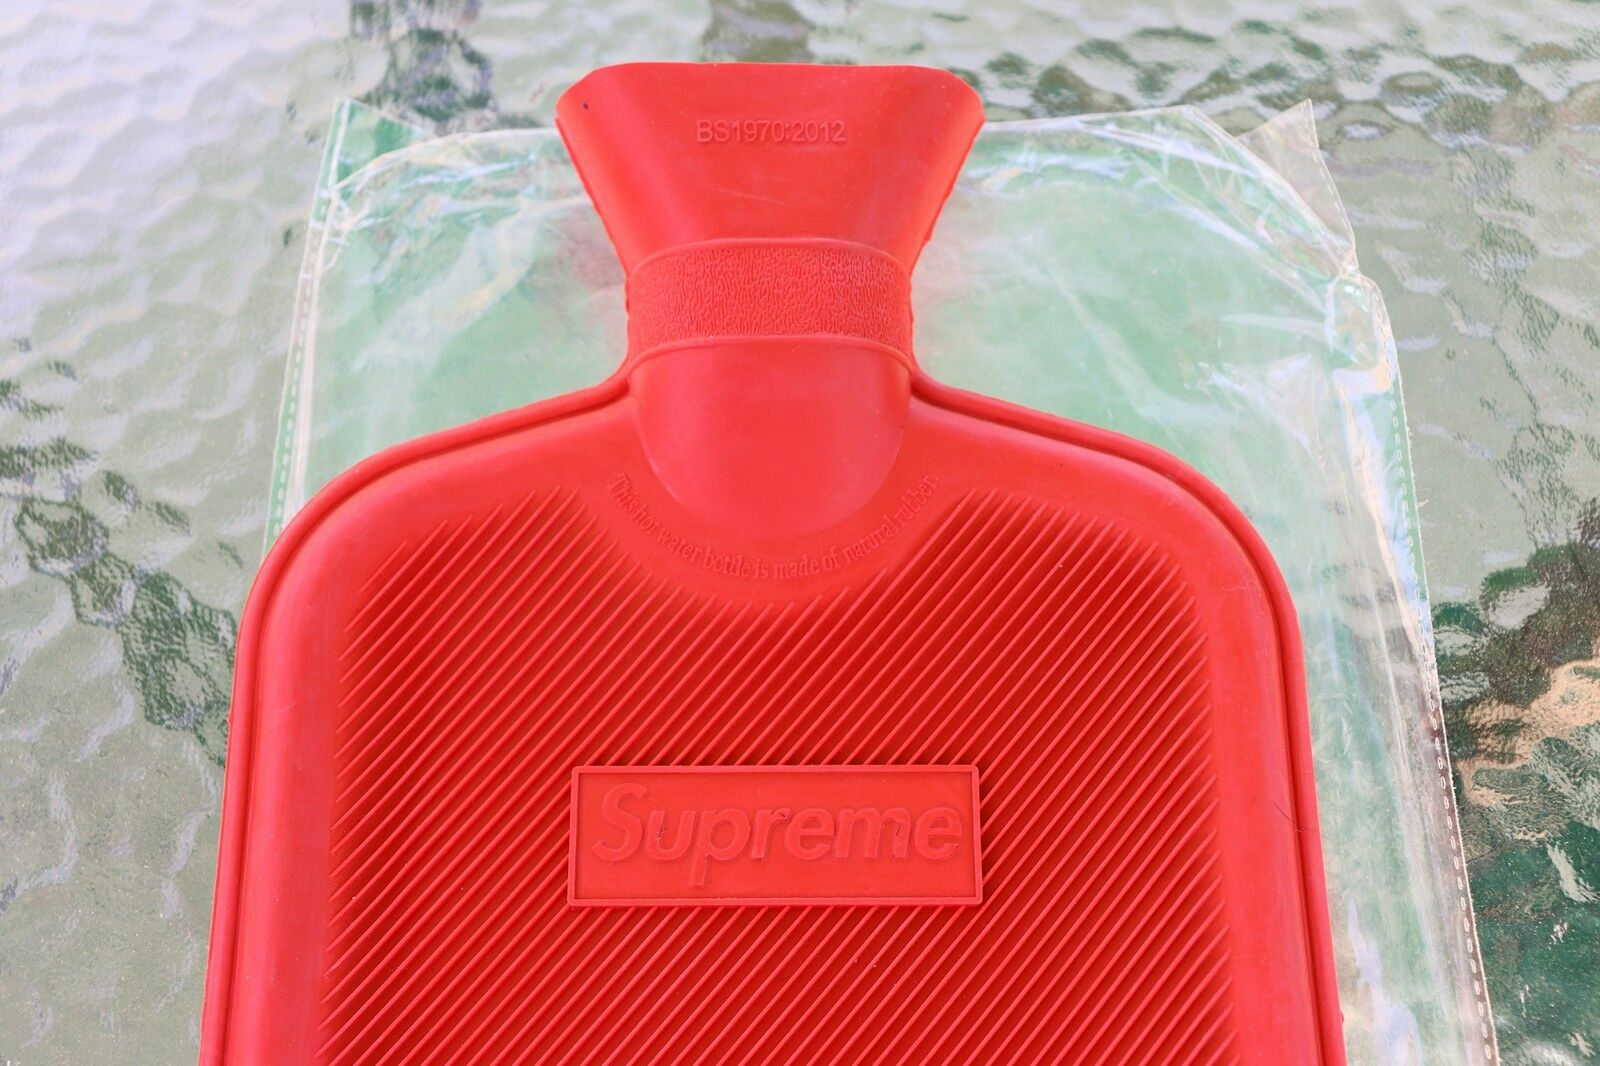 Supreme Box Logo Hot Water Bottle Rubber Red F W 16